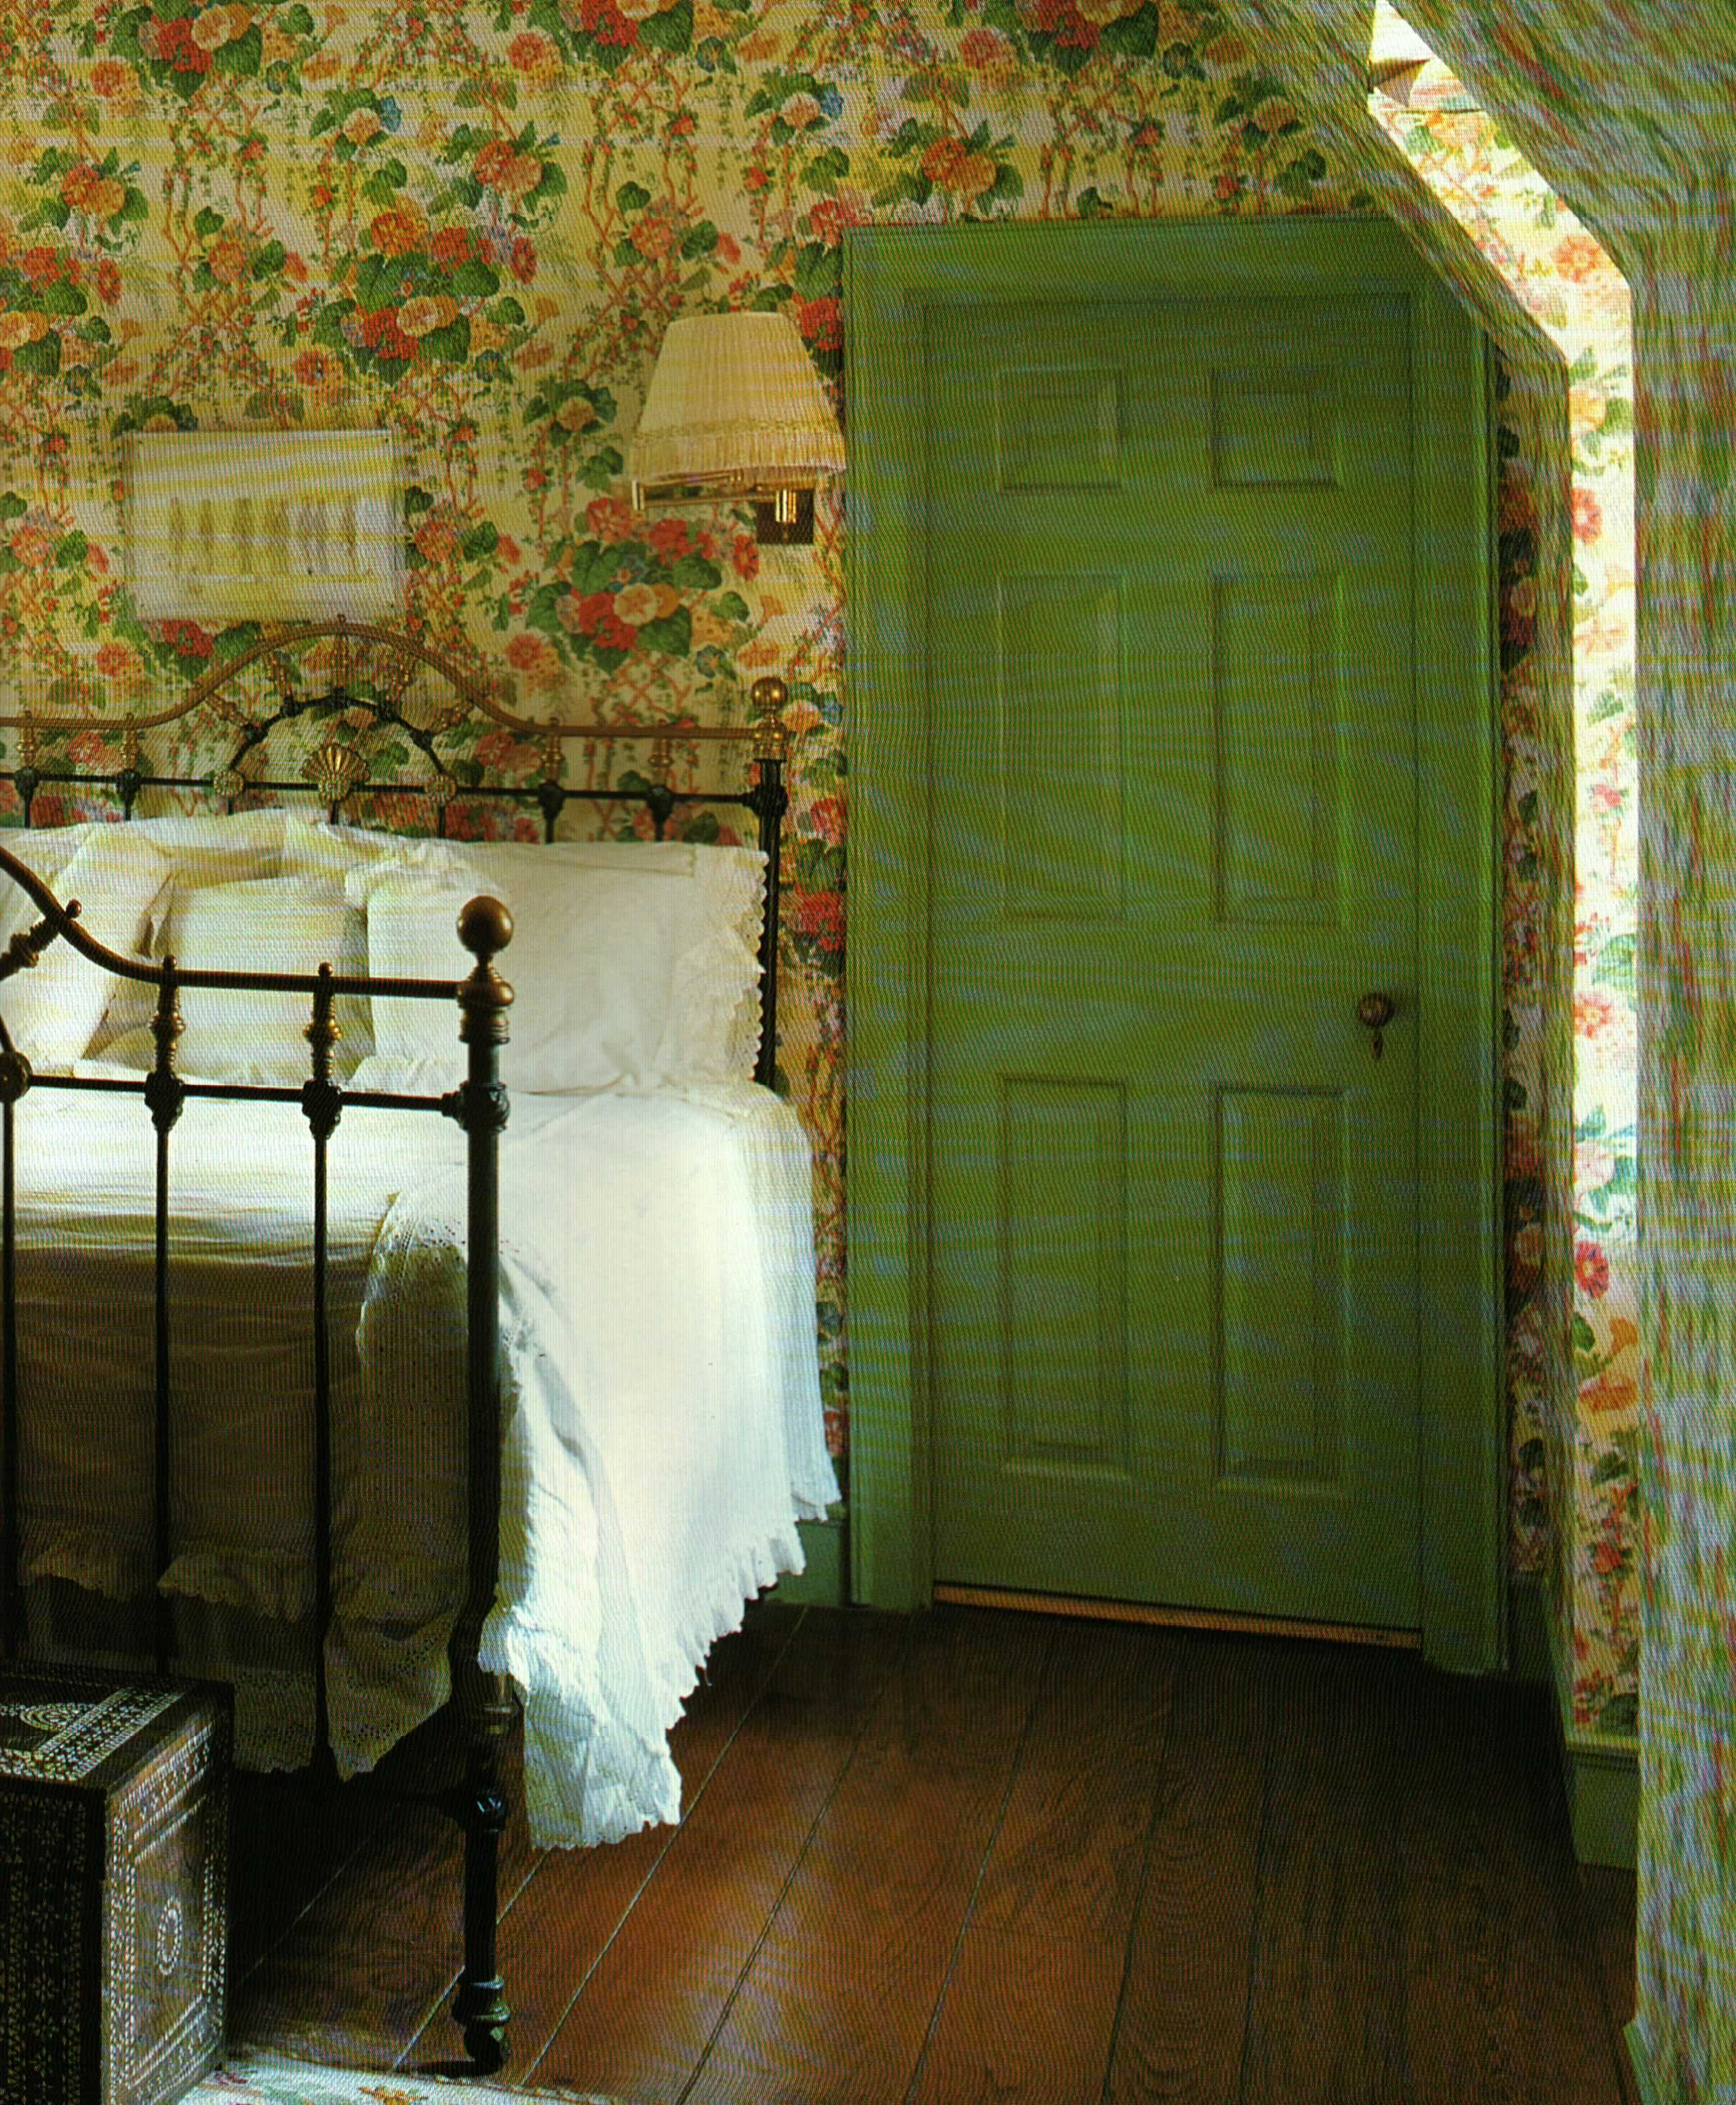 Country Cottage Bedrooms: Green Door, Floral Wallpaper, And Iron Bed At The Quaint